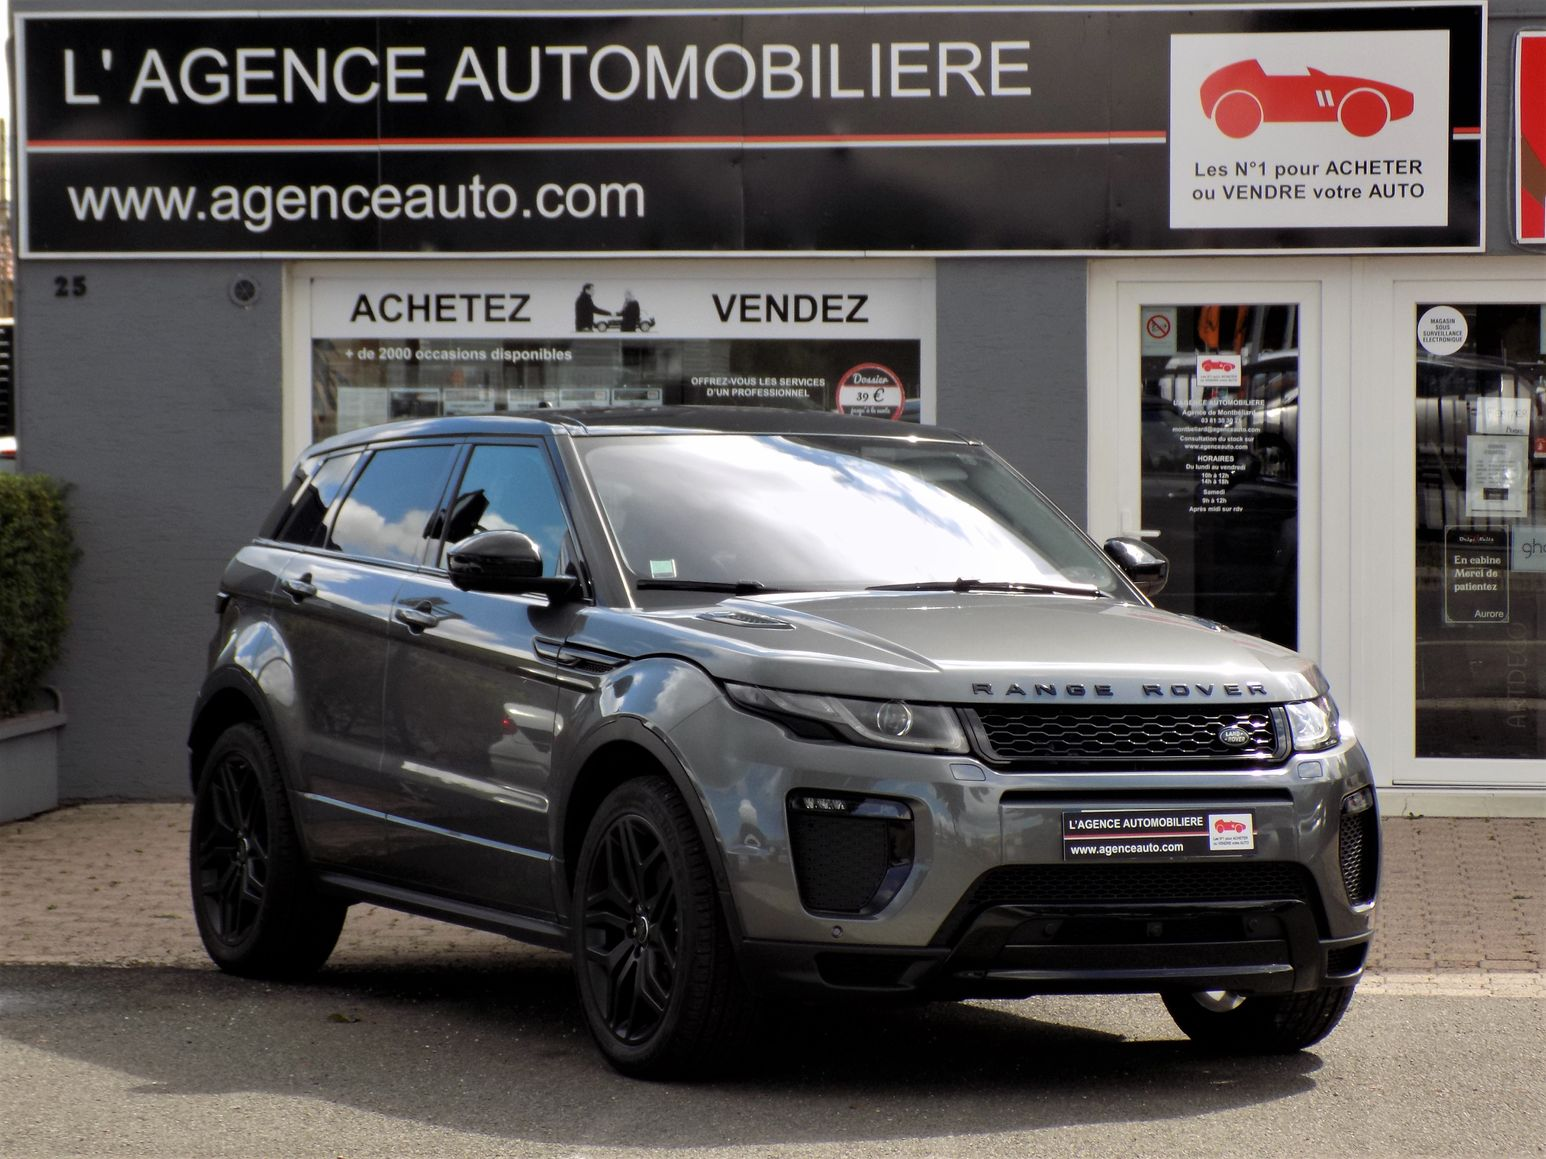 land rover range rover evoque 2 0 td4 180 4wd hse dynamic bva occasion montbeliard pas cher. Black Bedroom Furniture Sets. Home Design Ideas